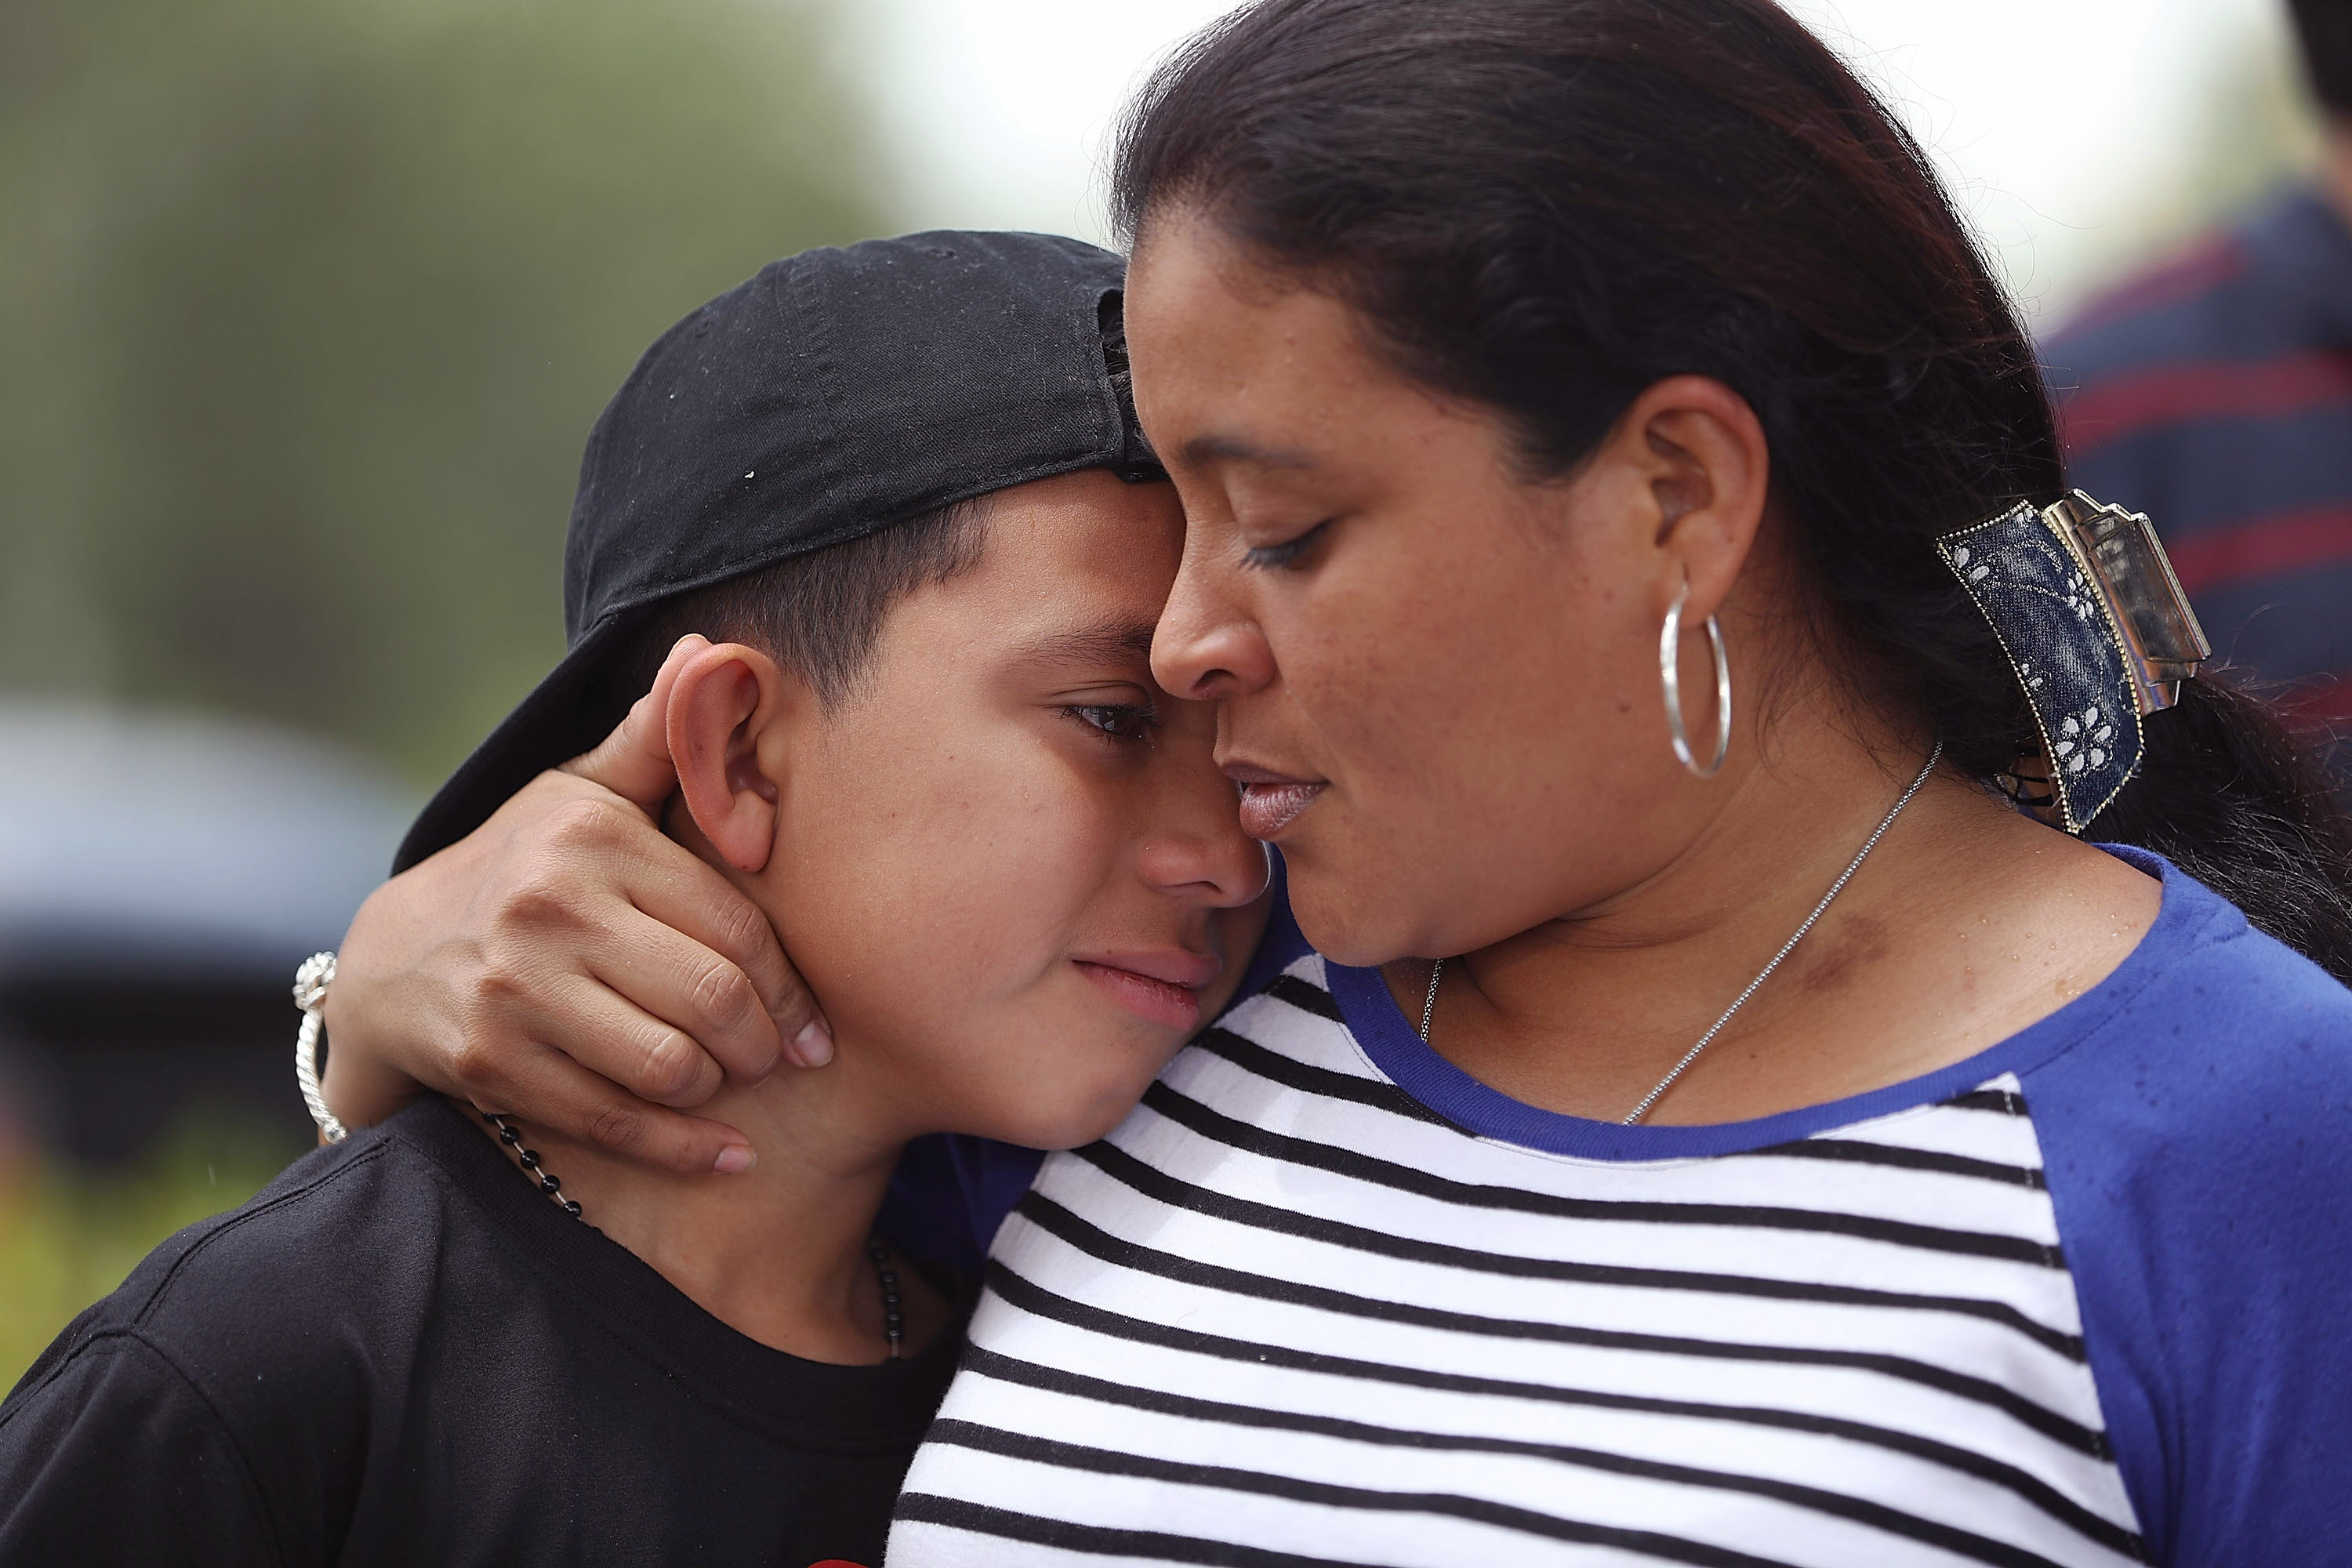 Deporting Salvadorans May Lead to Economic Decline